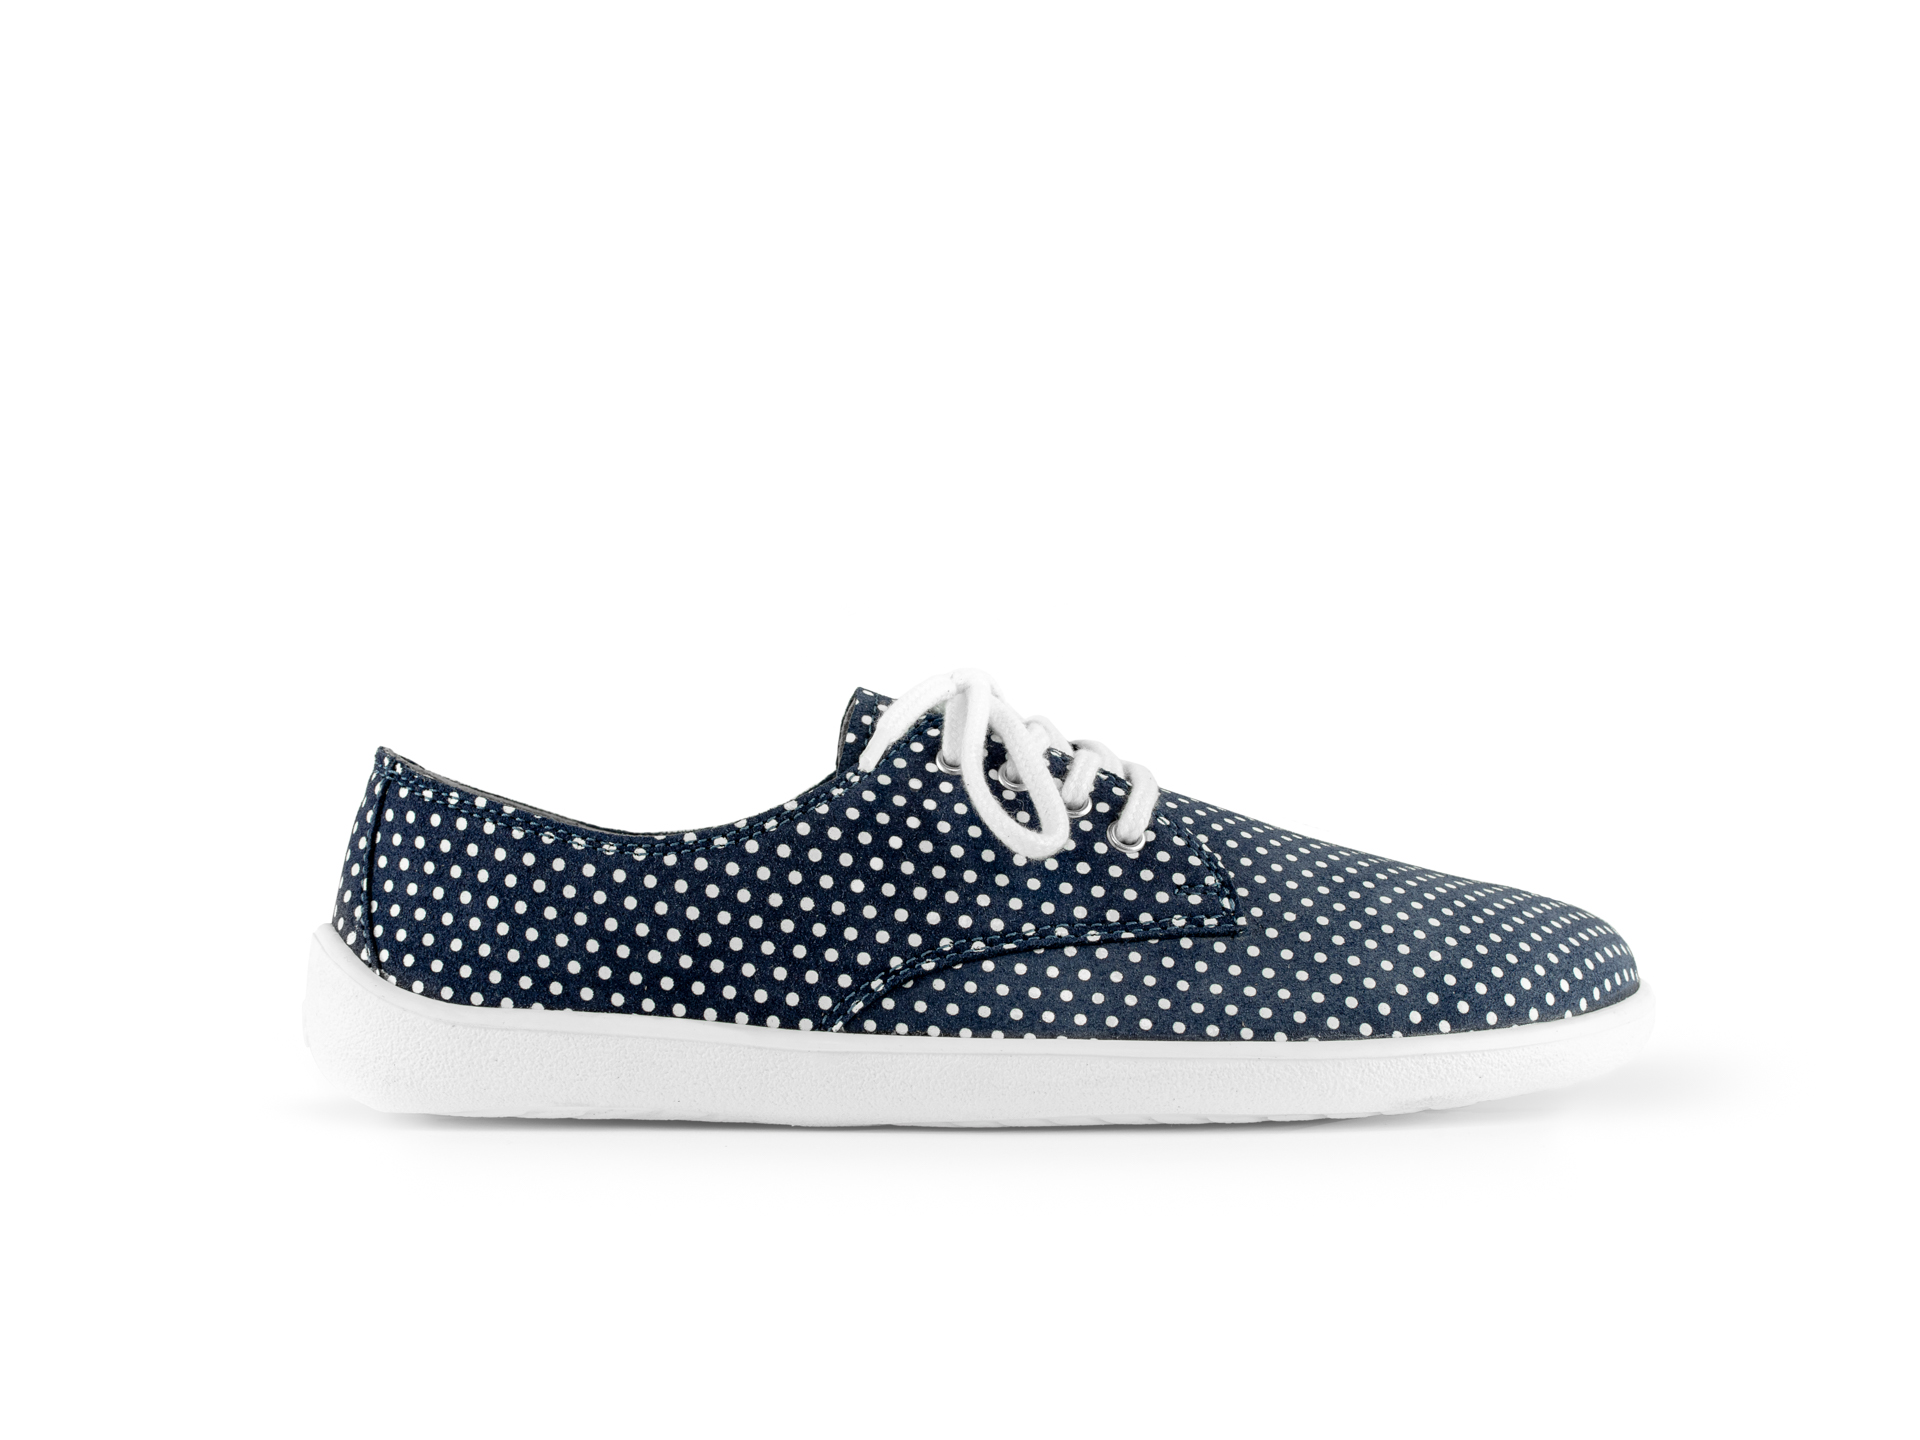 Barefoot Shoes - Be Lenka City - Dark Blue with White Dots 39